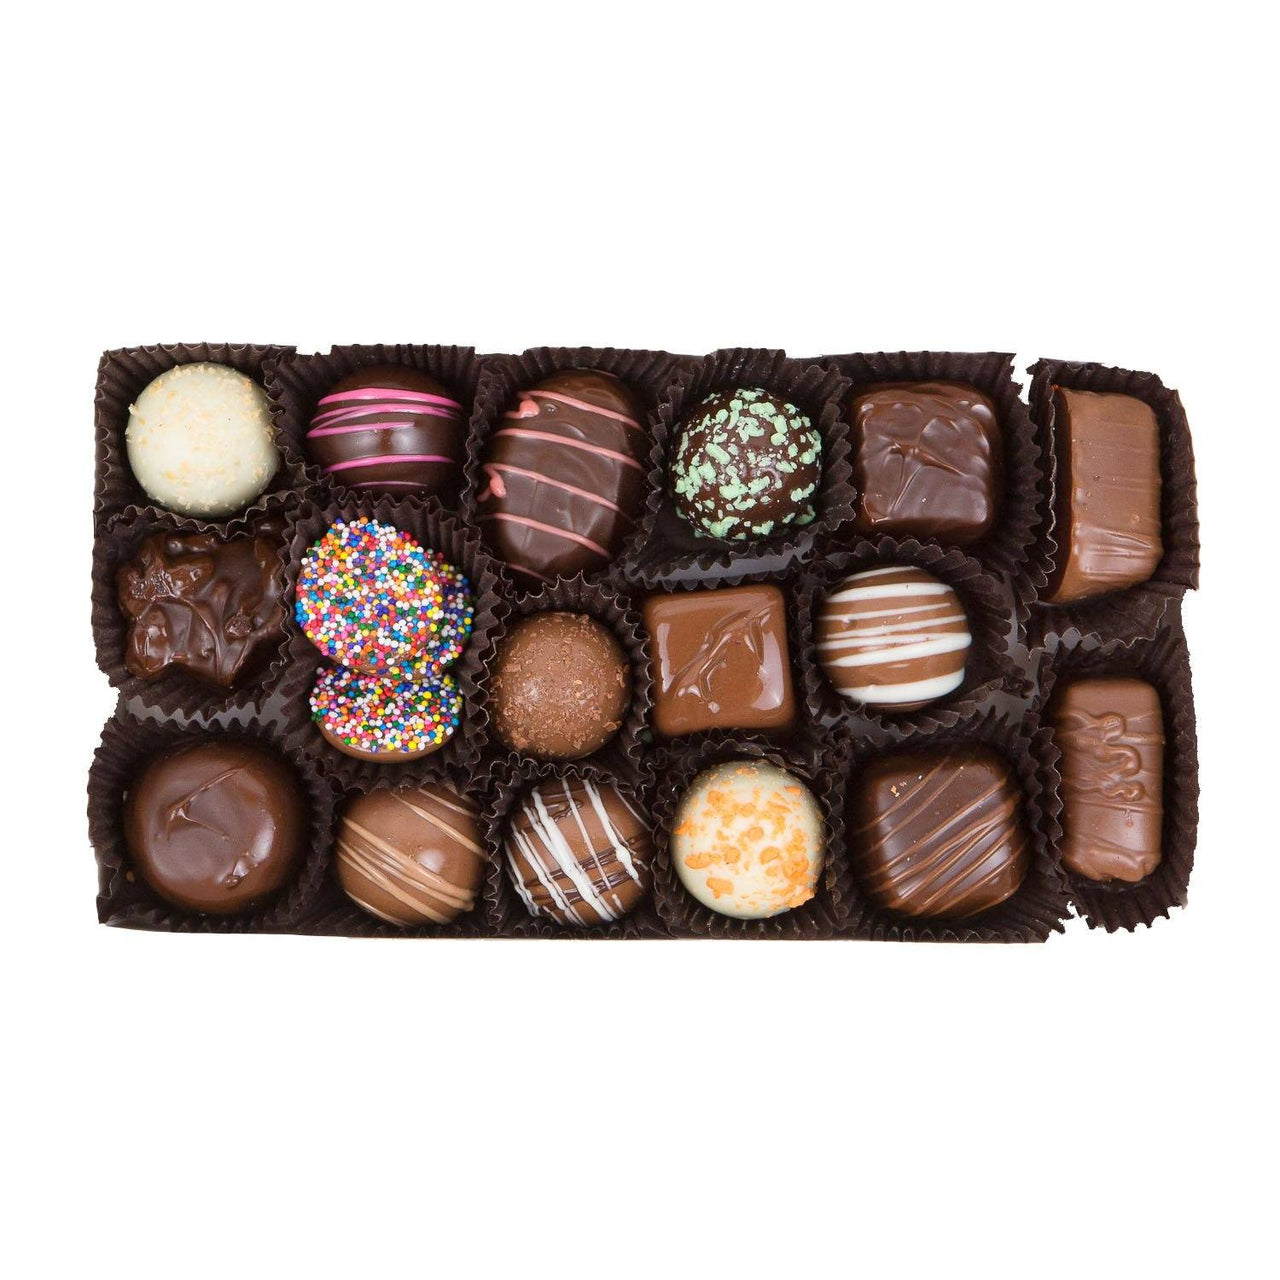 Gifts for Grandpa - Assorted Chocolate Gift Box - Jackie's Chocolate (1487129018403)